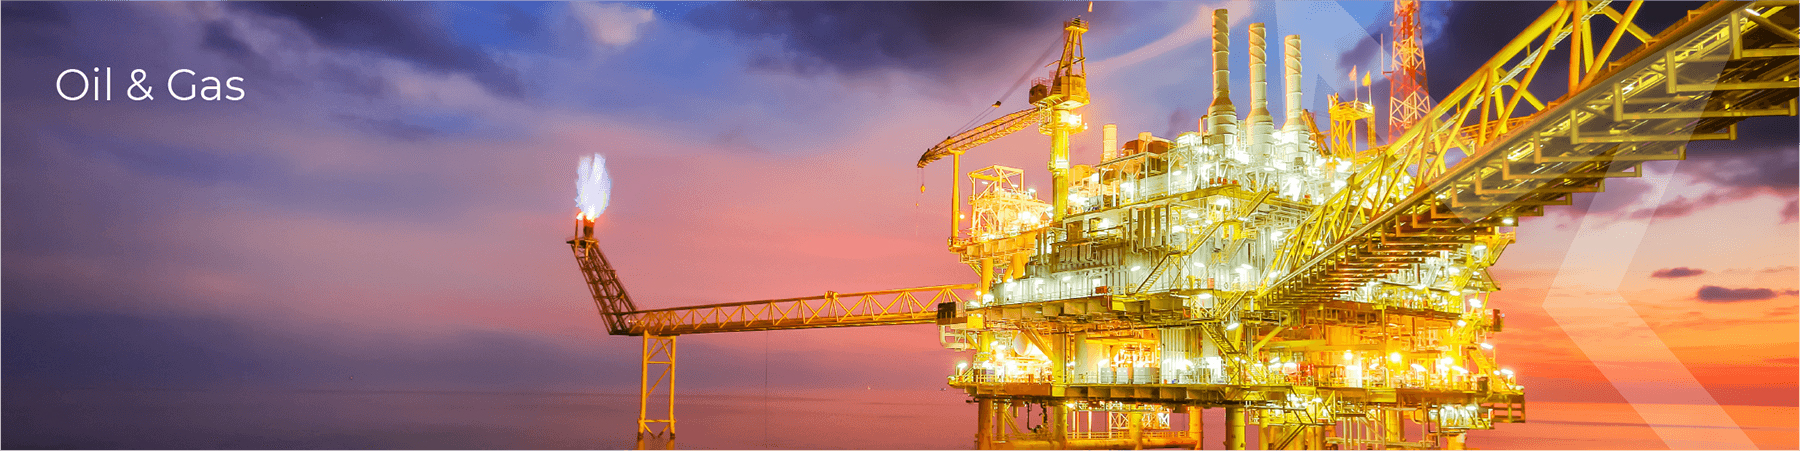 Oil & Gas Inudstry with photo of oil rig in sunset